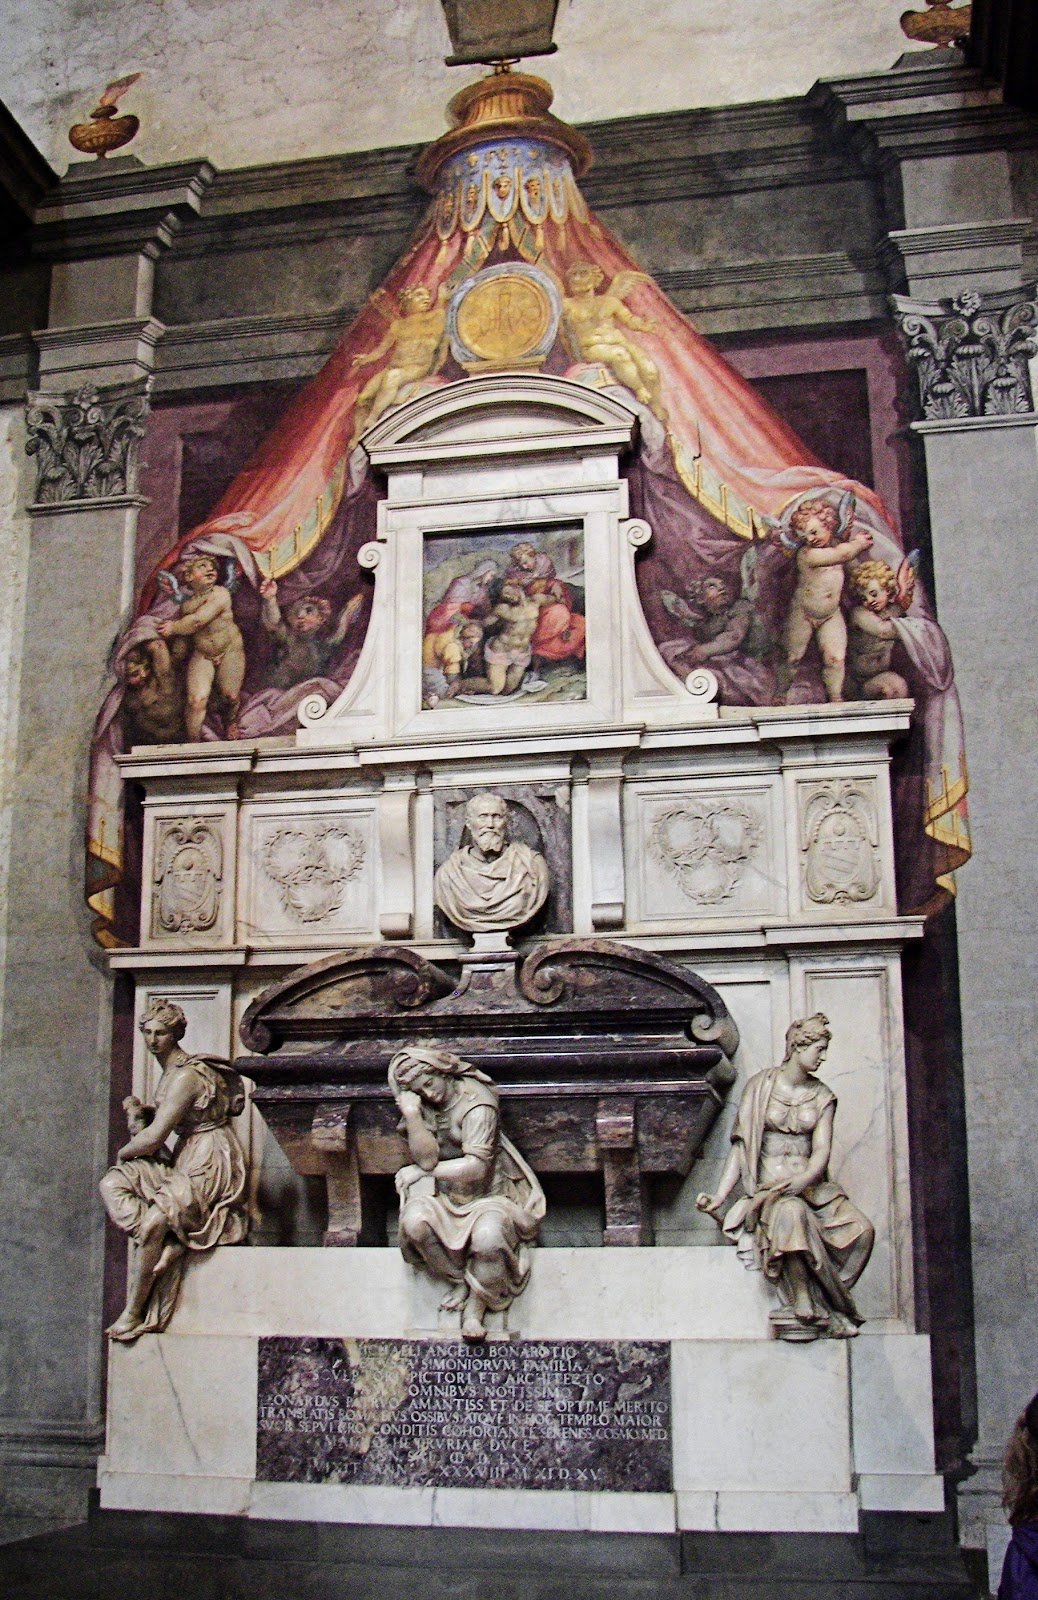 Michelangelo's tomb inside Santa Croce in Florence, Italy.